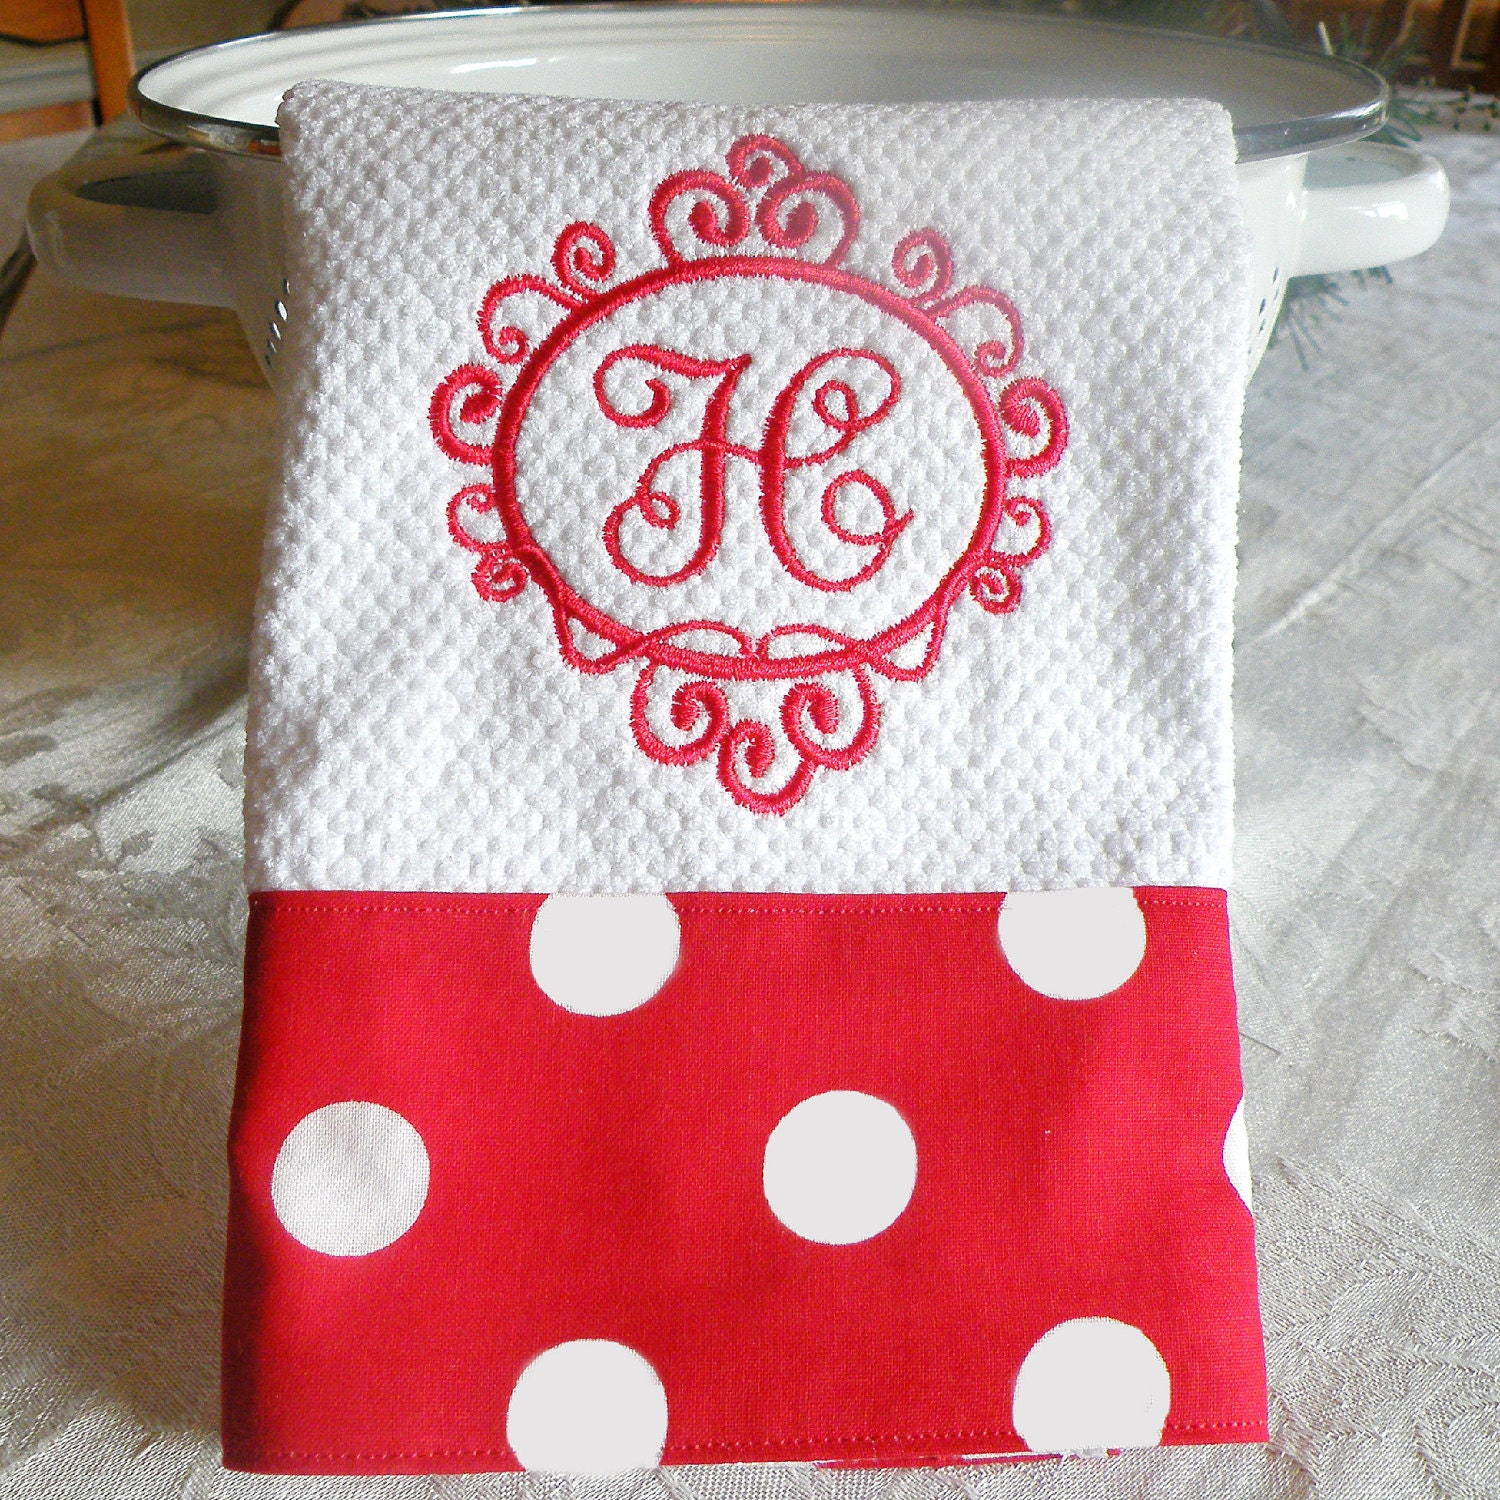 Monogrammed Kitchen Towel Red With White Polka Dots Towel